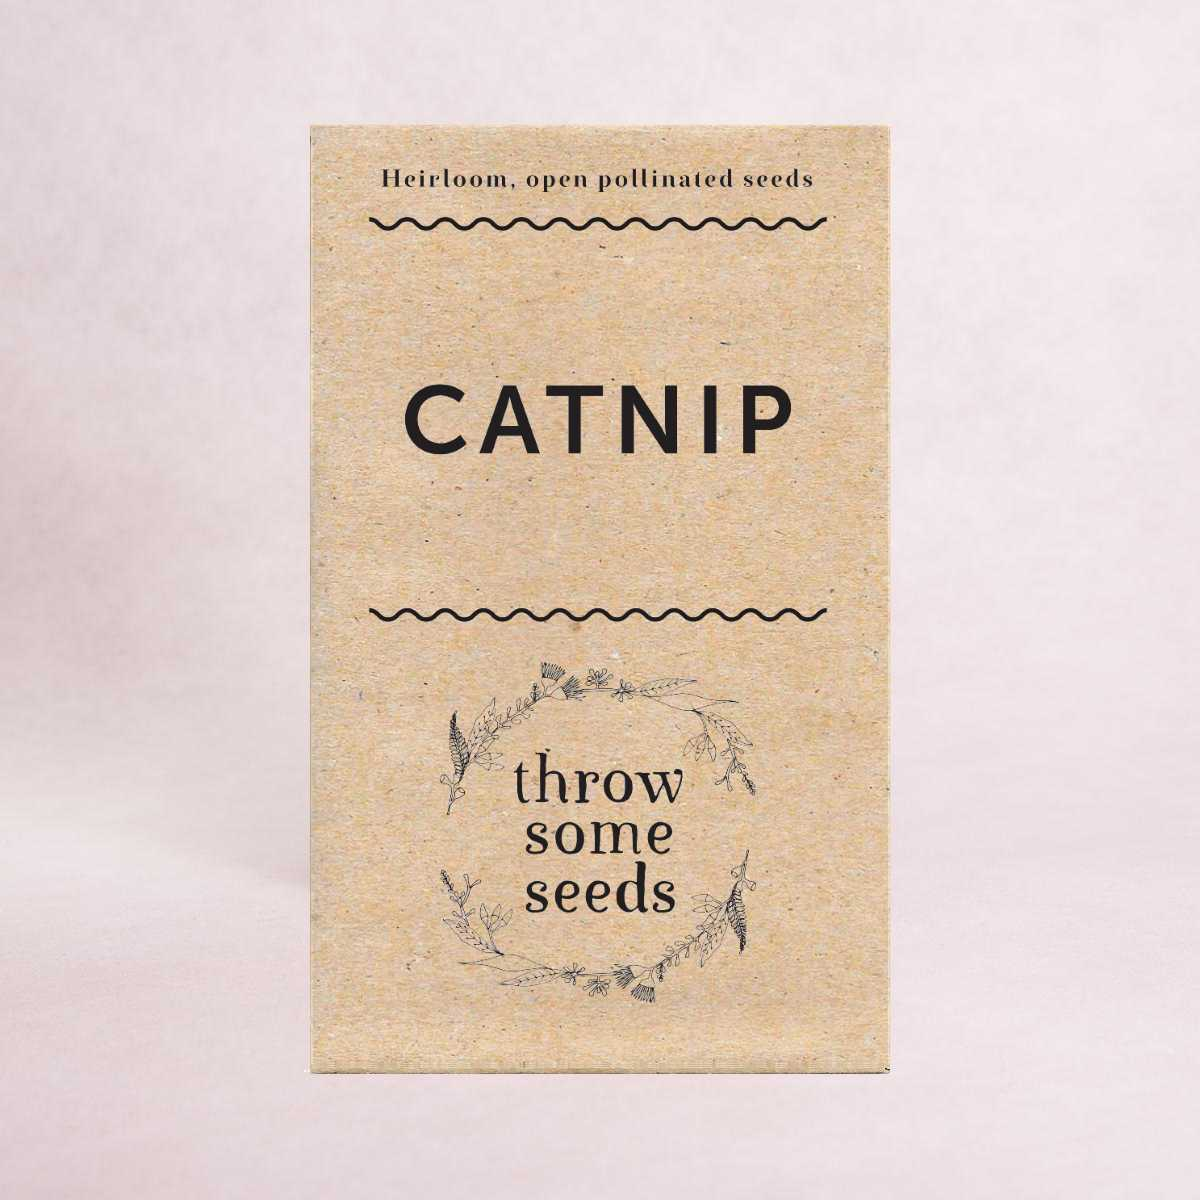 Catnip Seeds - Seeds - Throw Some Seeds - Australian gardening gifts and eco products online!